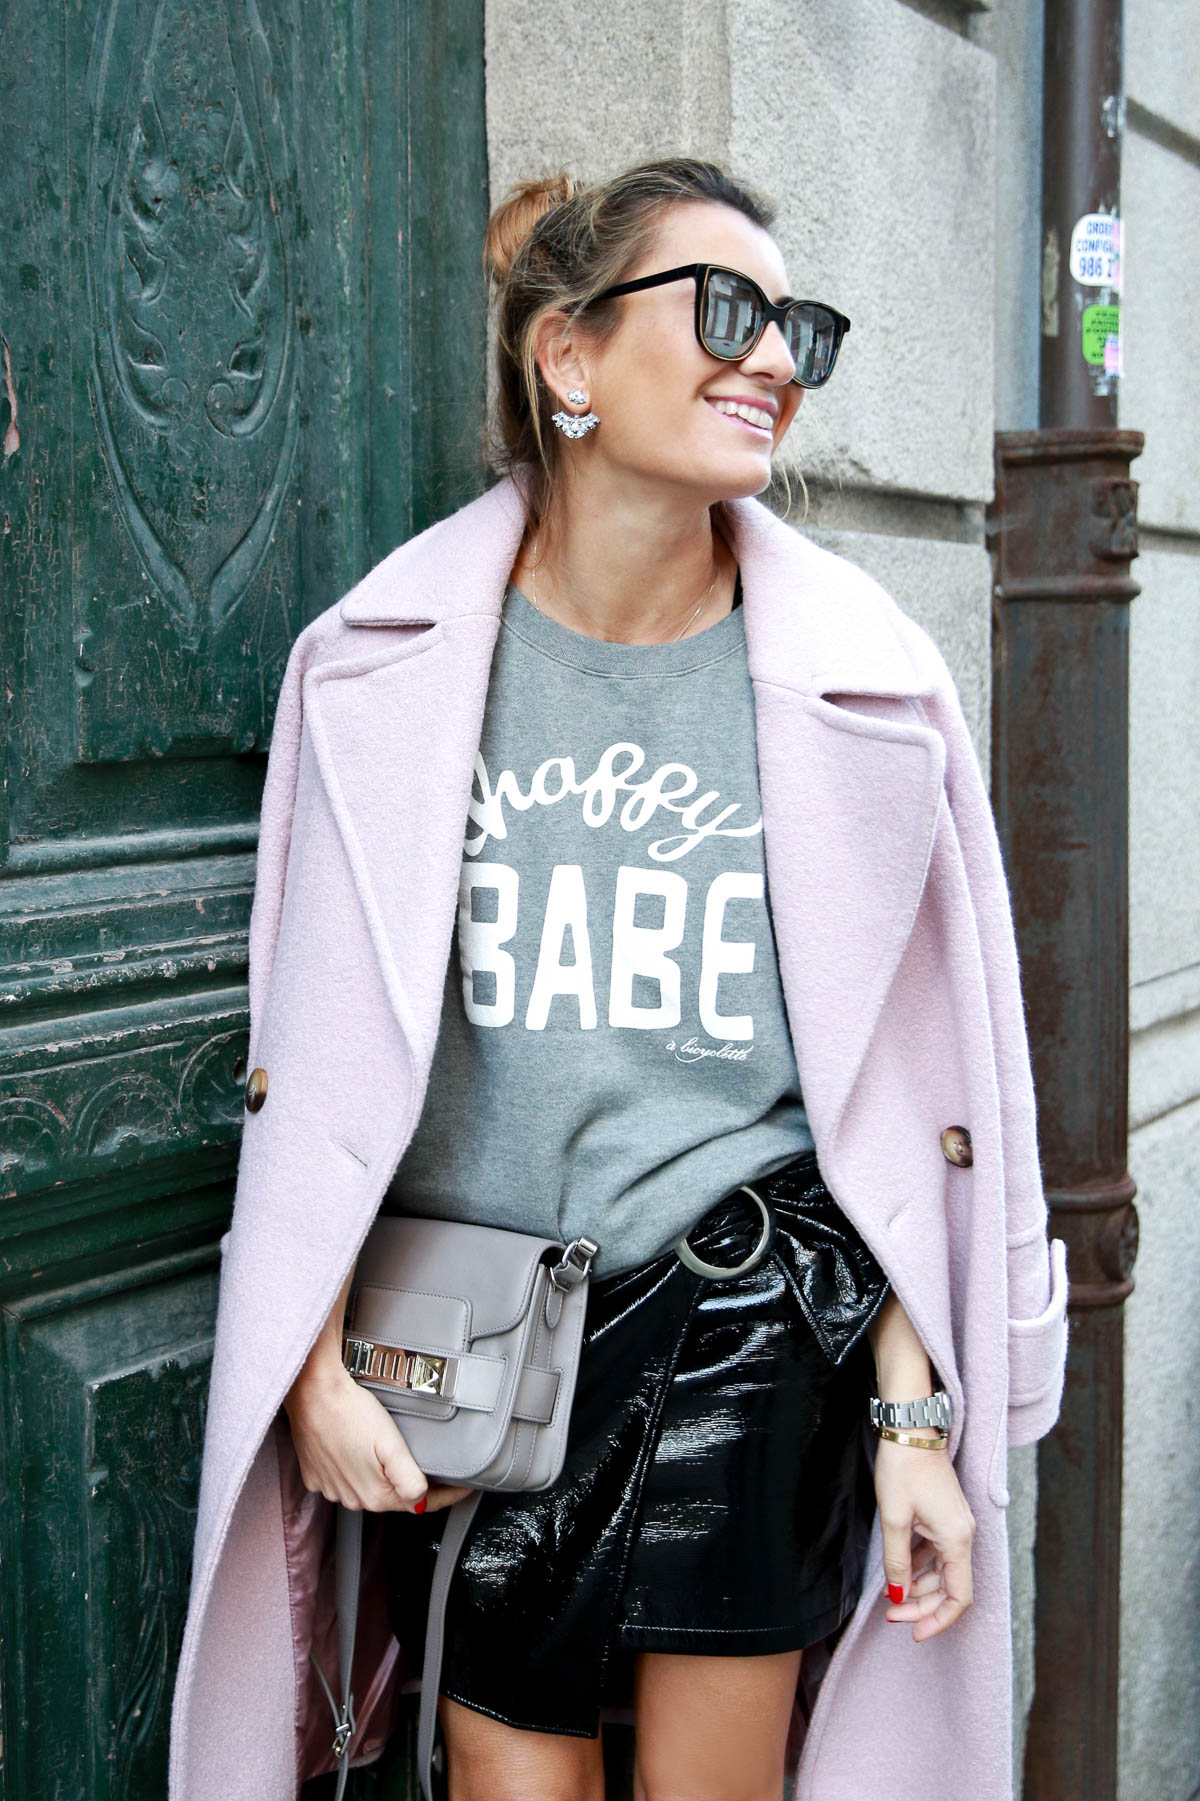 HAPPY BABE-98324-bartabacmode